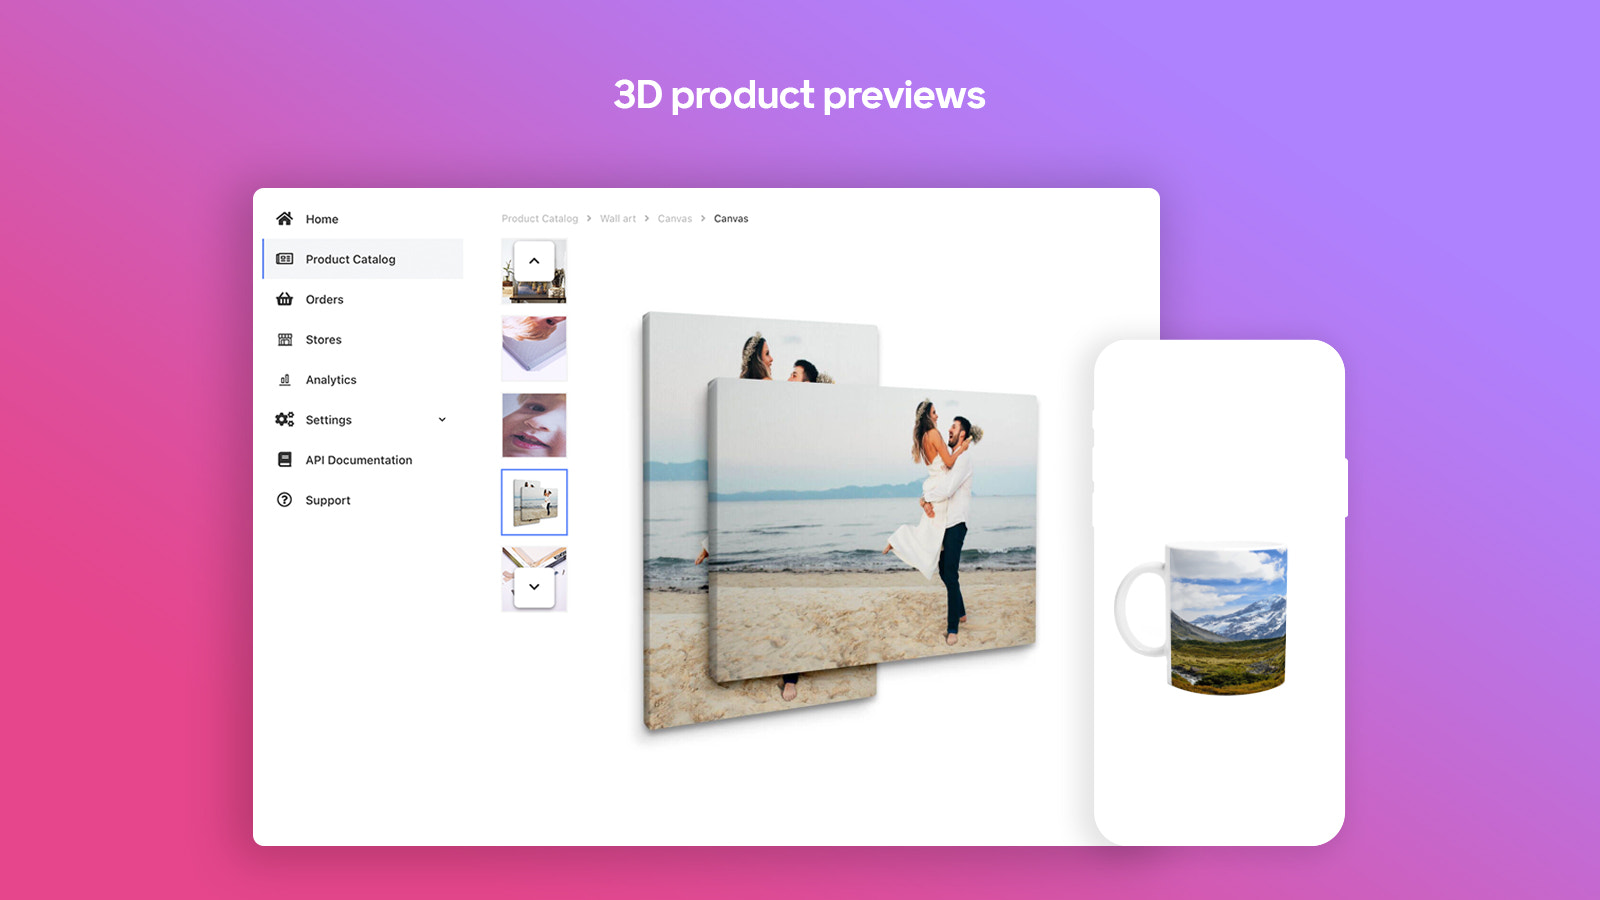 Preview your products in 3D